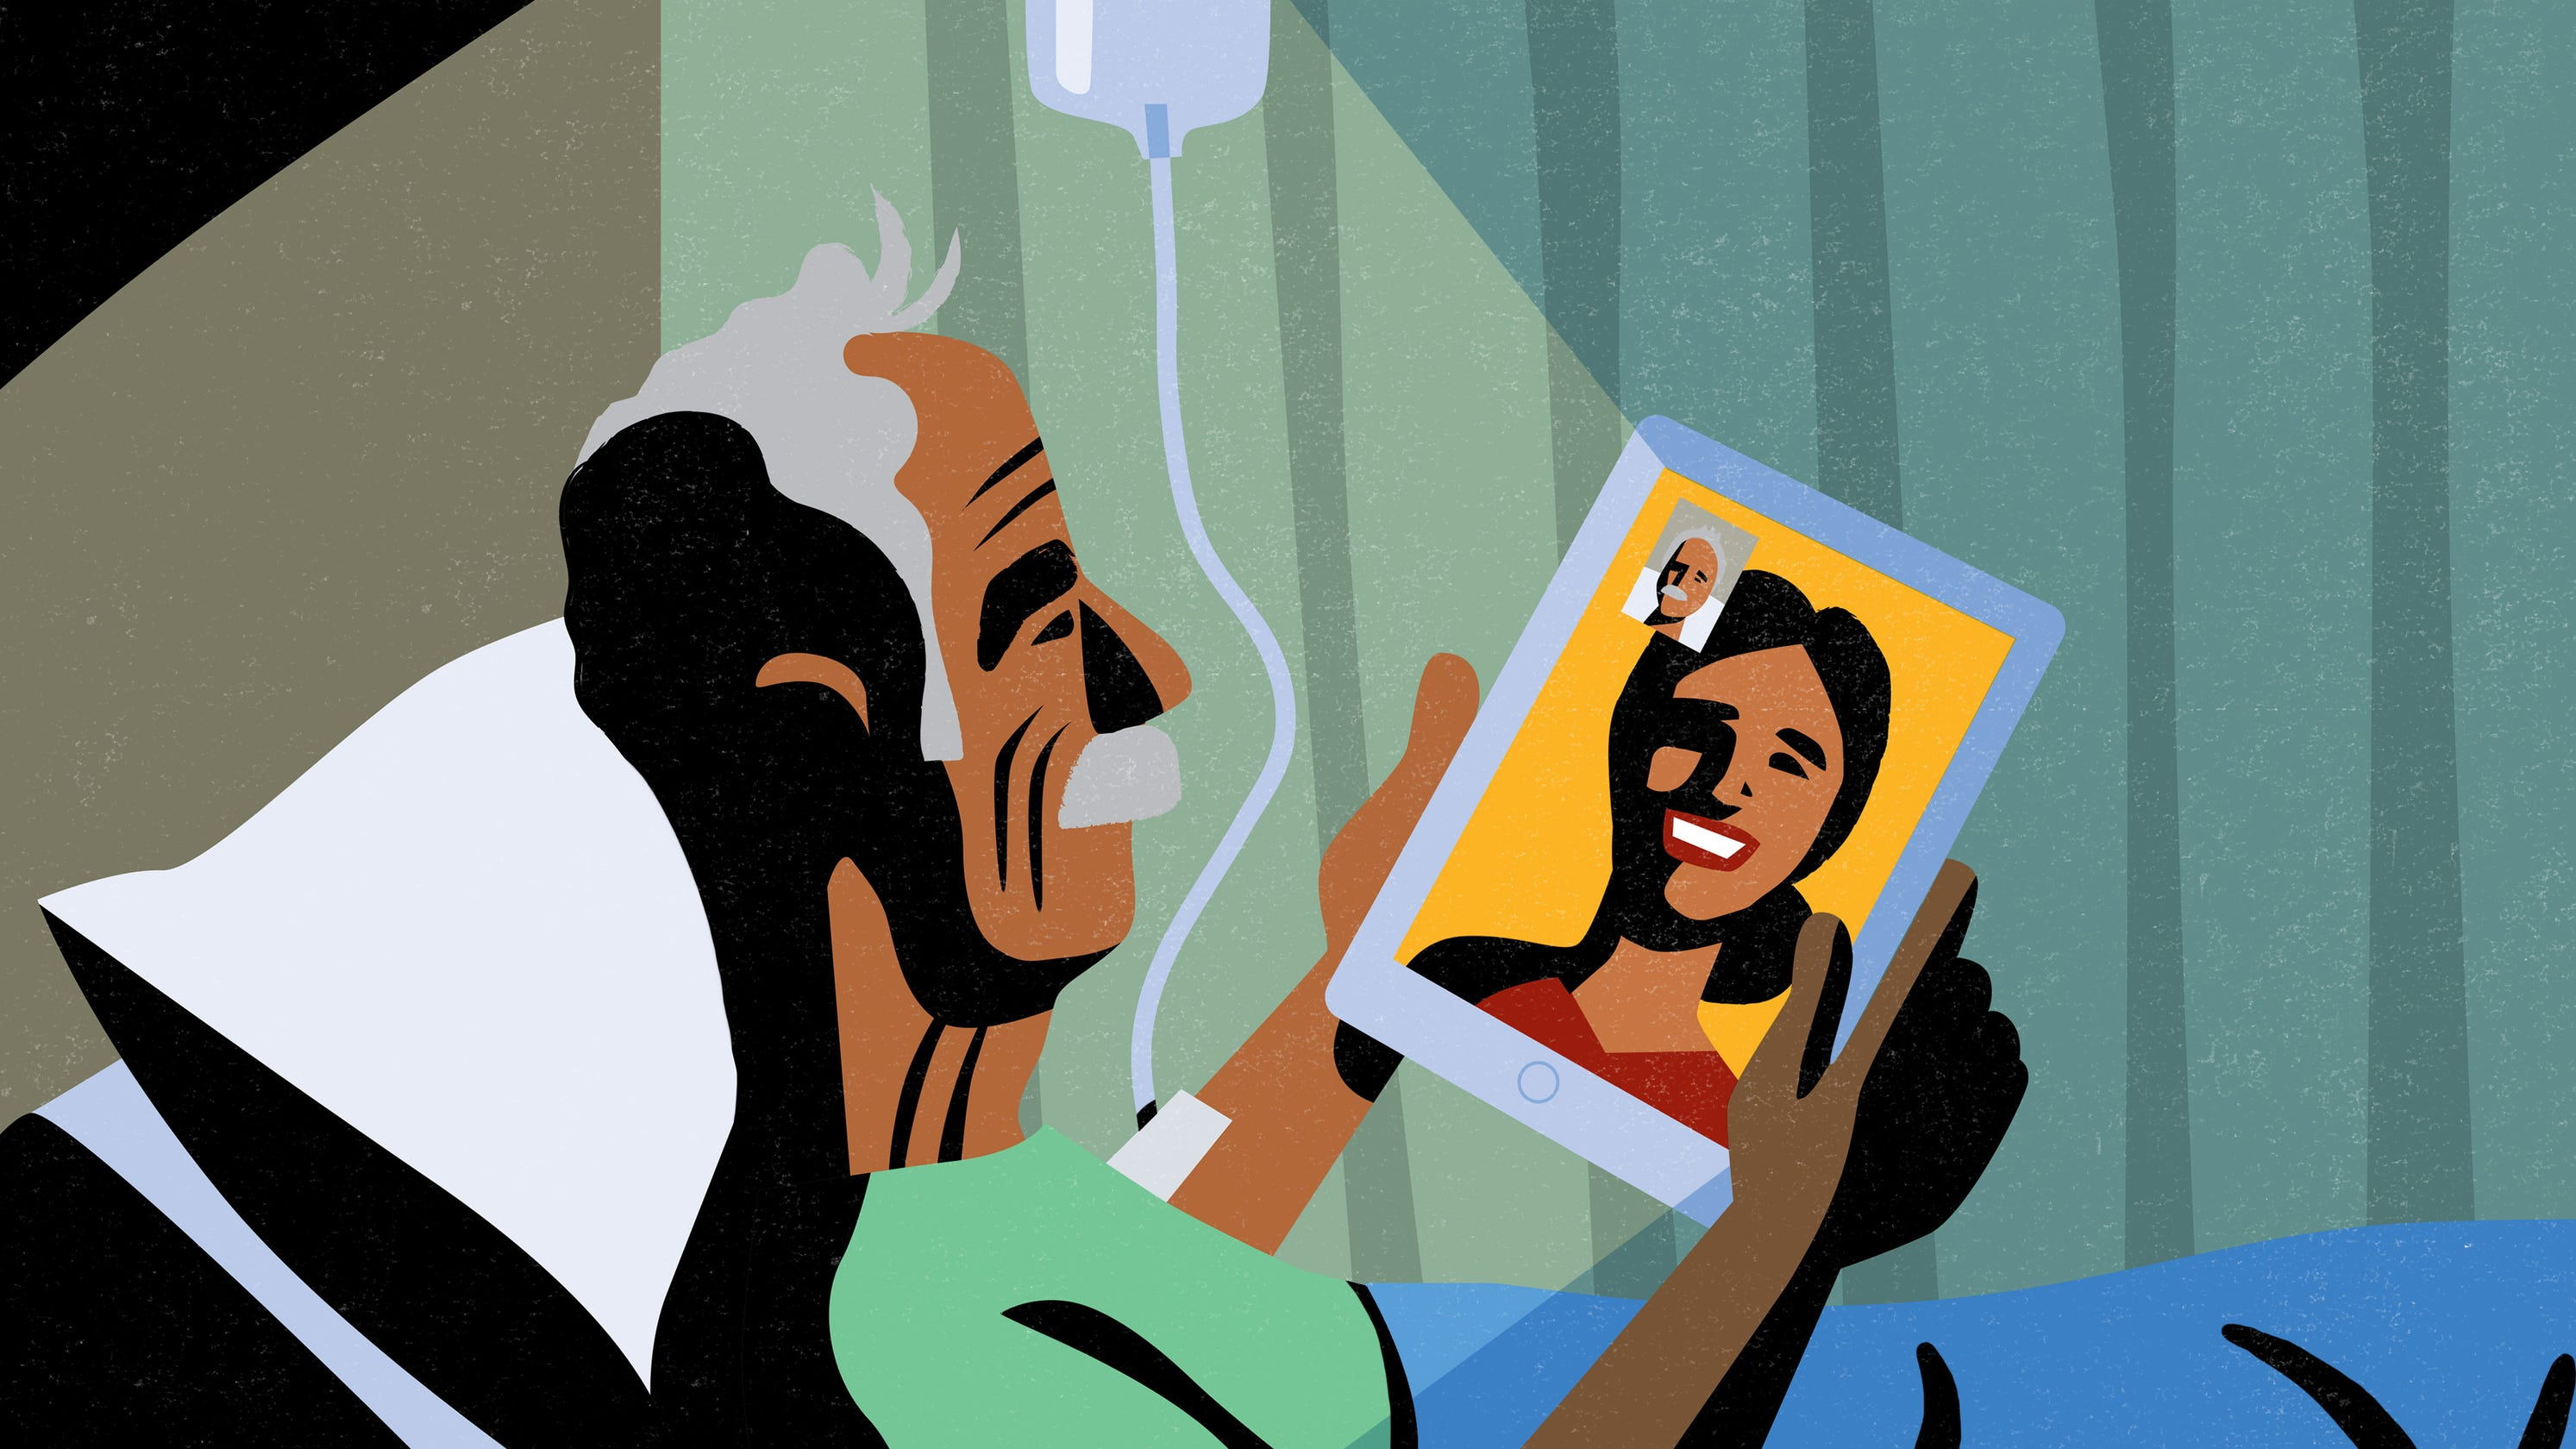 Technology key to quality healthcare in communities of color